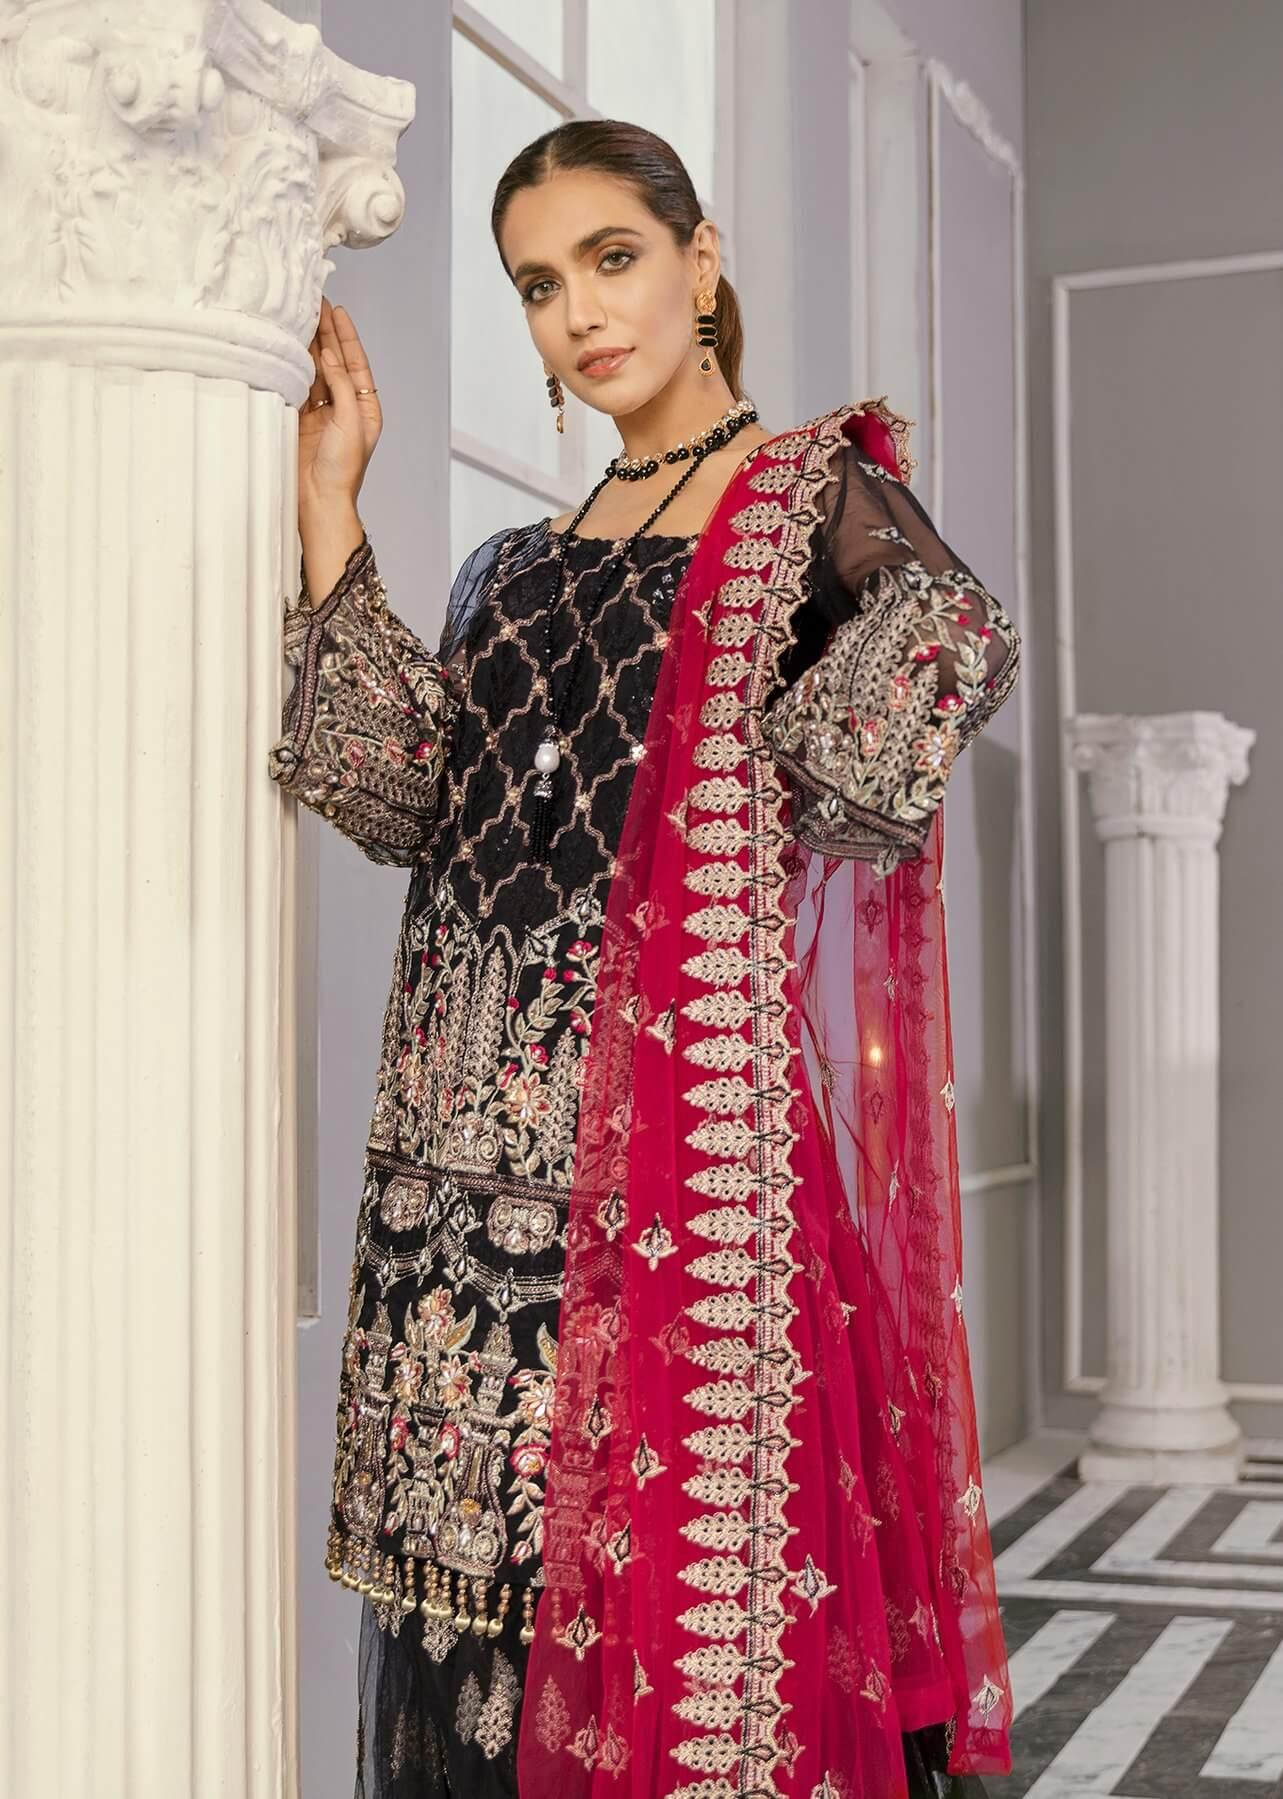 Akbar Aslam Libas e Khas Wedding Collection 3pc Suit AAWC-1342 BACCARA